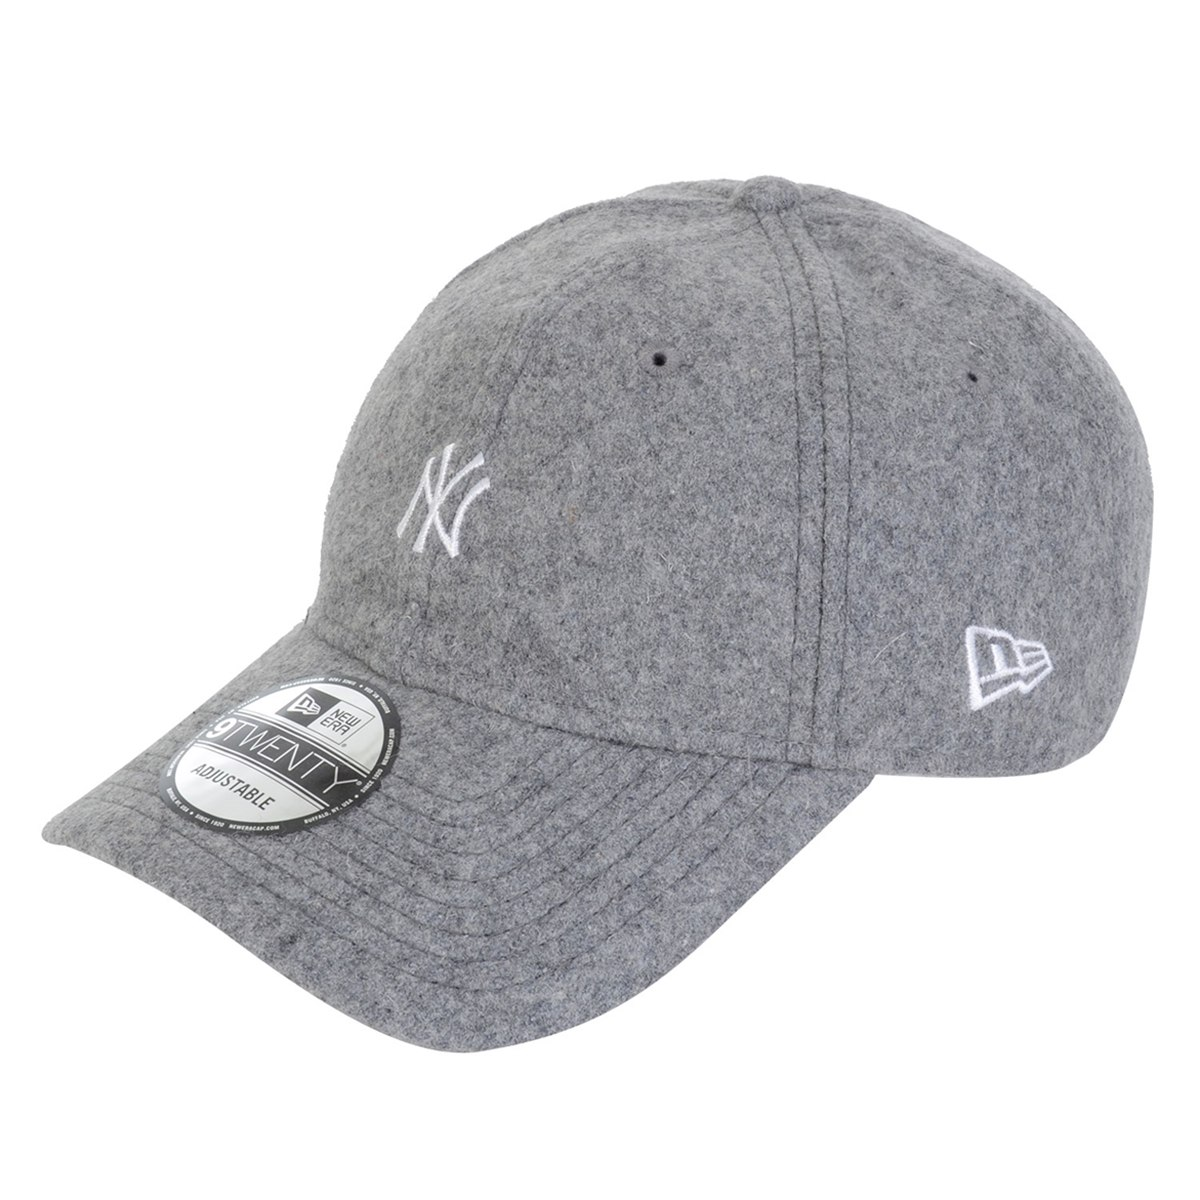 boné masculino new era 920 strapback new york yankees cinza. Carregando  zoom. 36d2042eabd